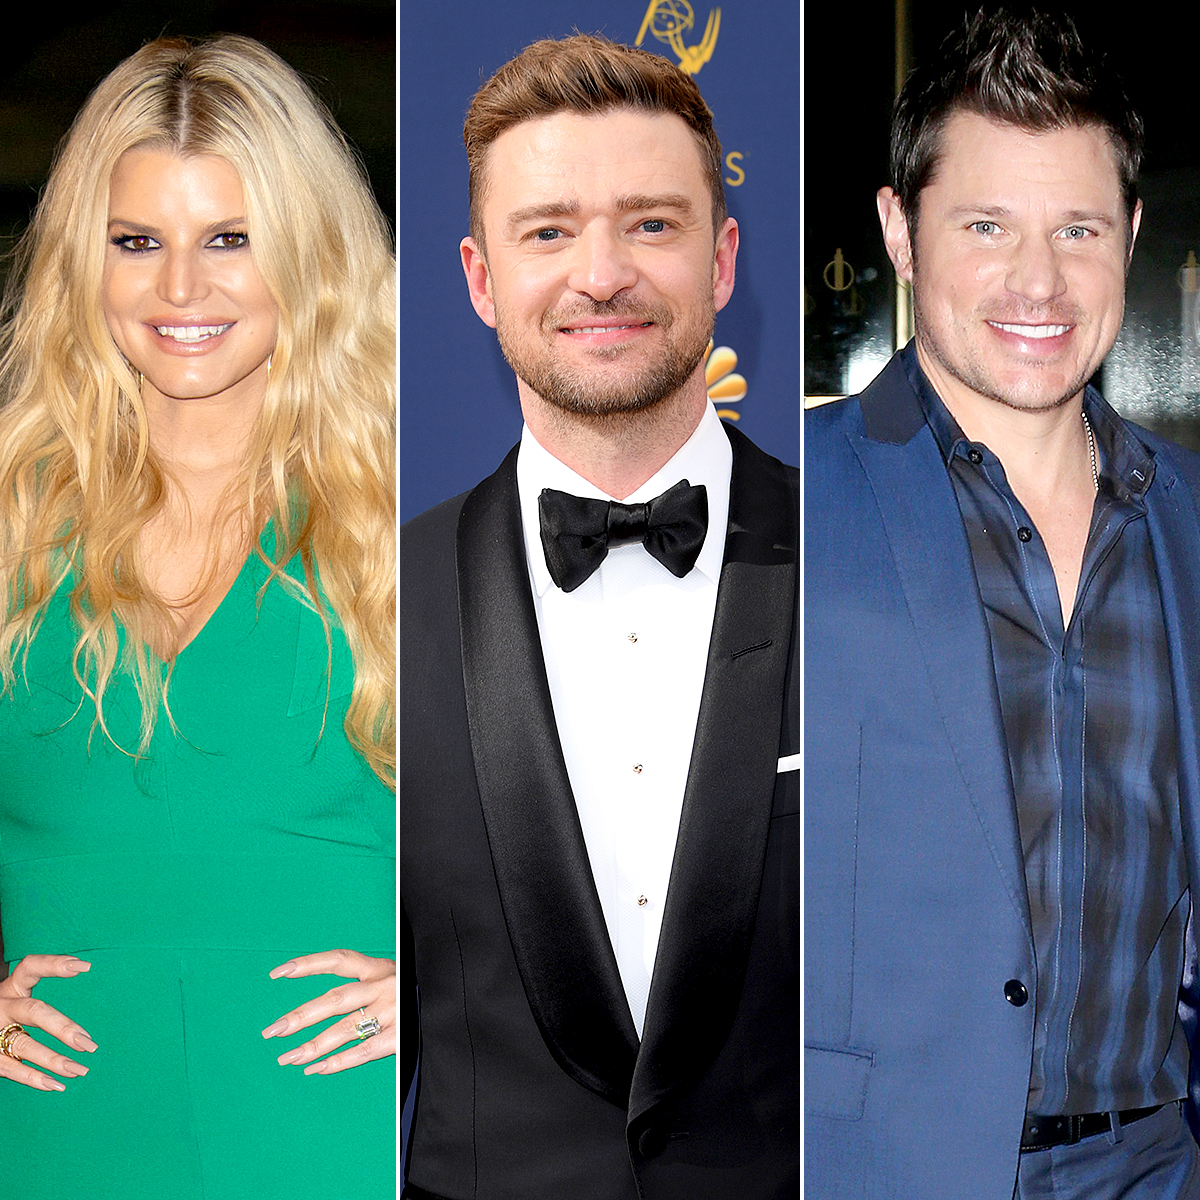 Jessica-Simpson--Justin-Timberlake-Kissed-Me-After-Nick-Lachey-Divorce